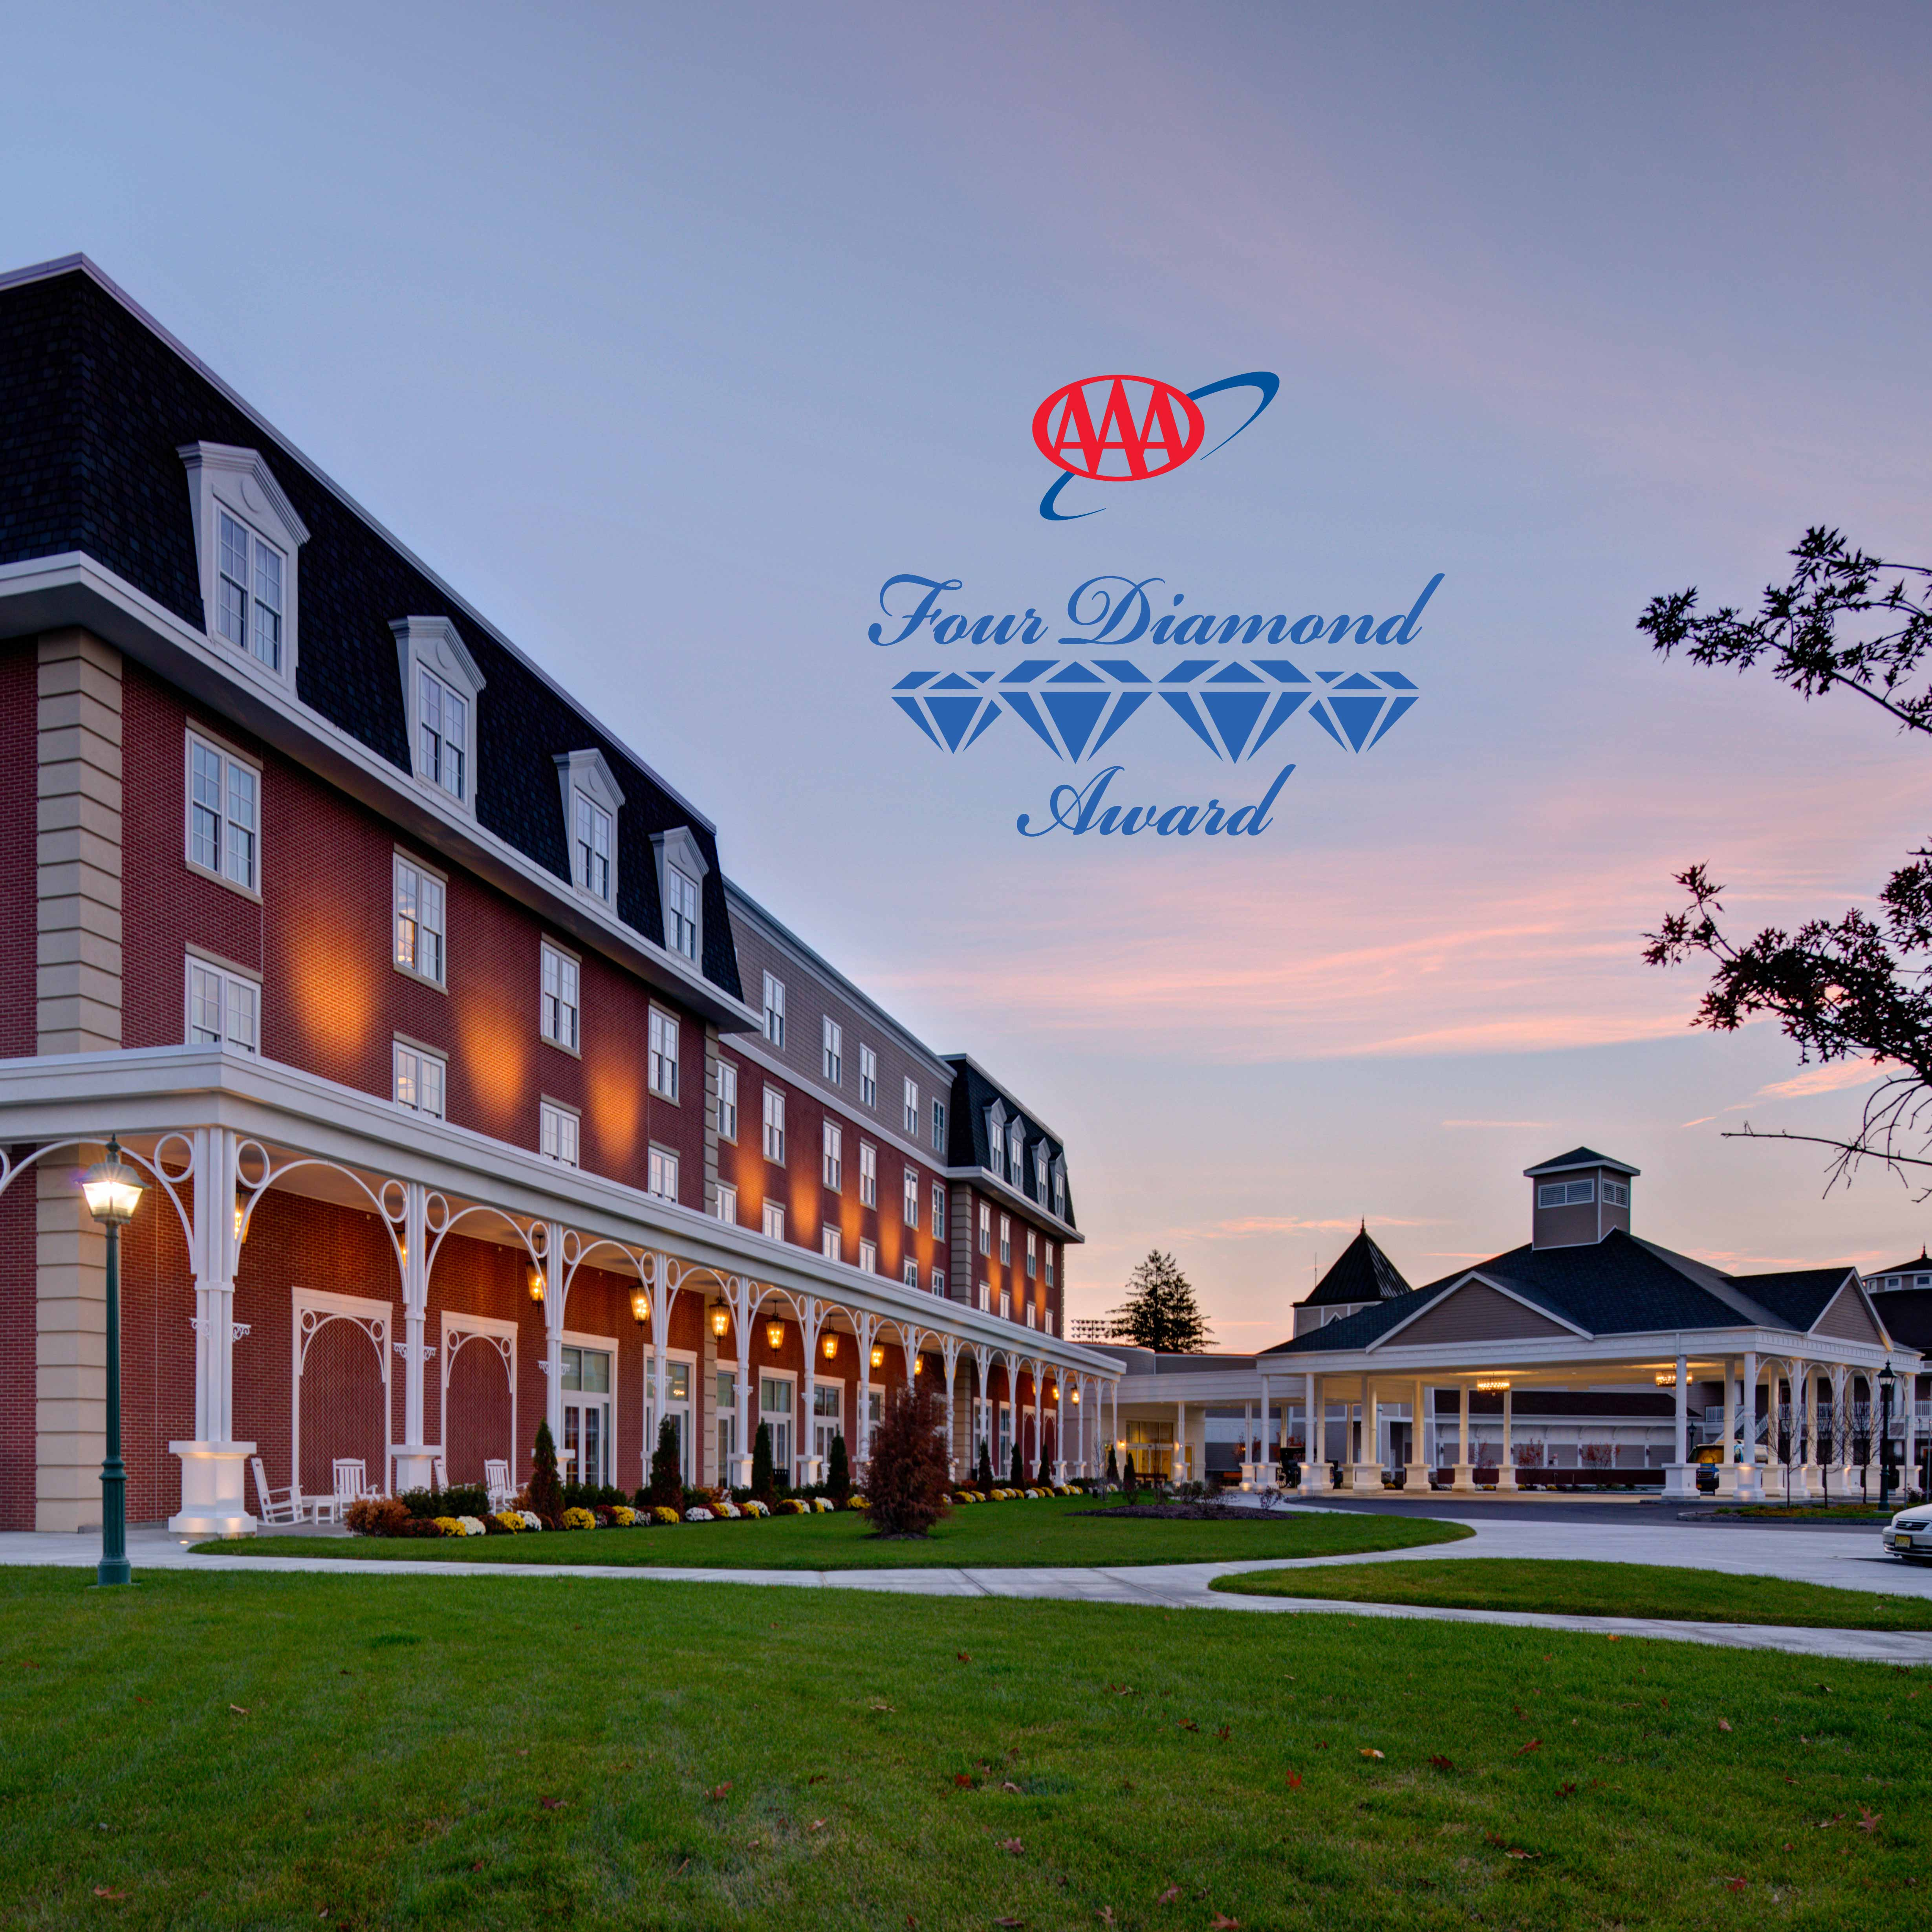 Experience Unmatched Luxury In An Exciting Atmosphere At Saratoga Hotel Featuring 117 Beautifully Ointed Rooms And Suites Our Is Also